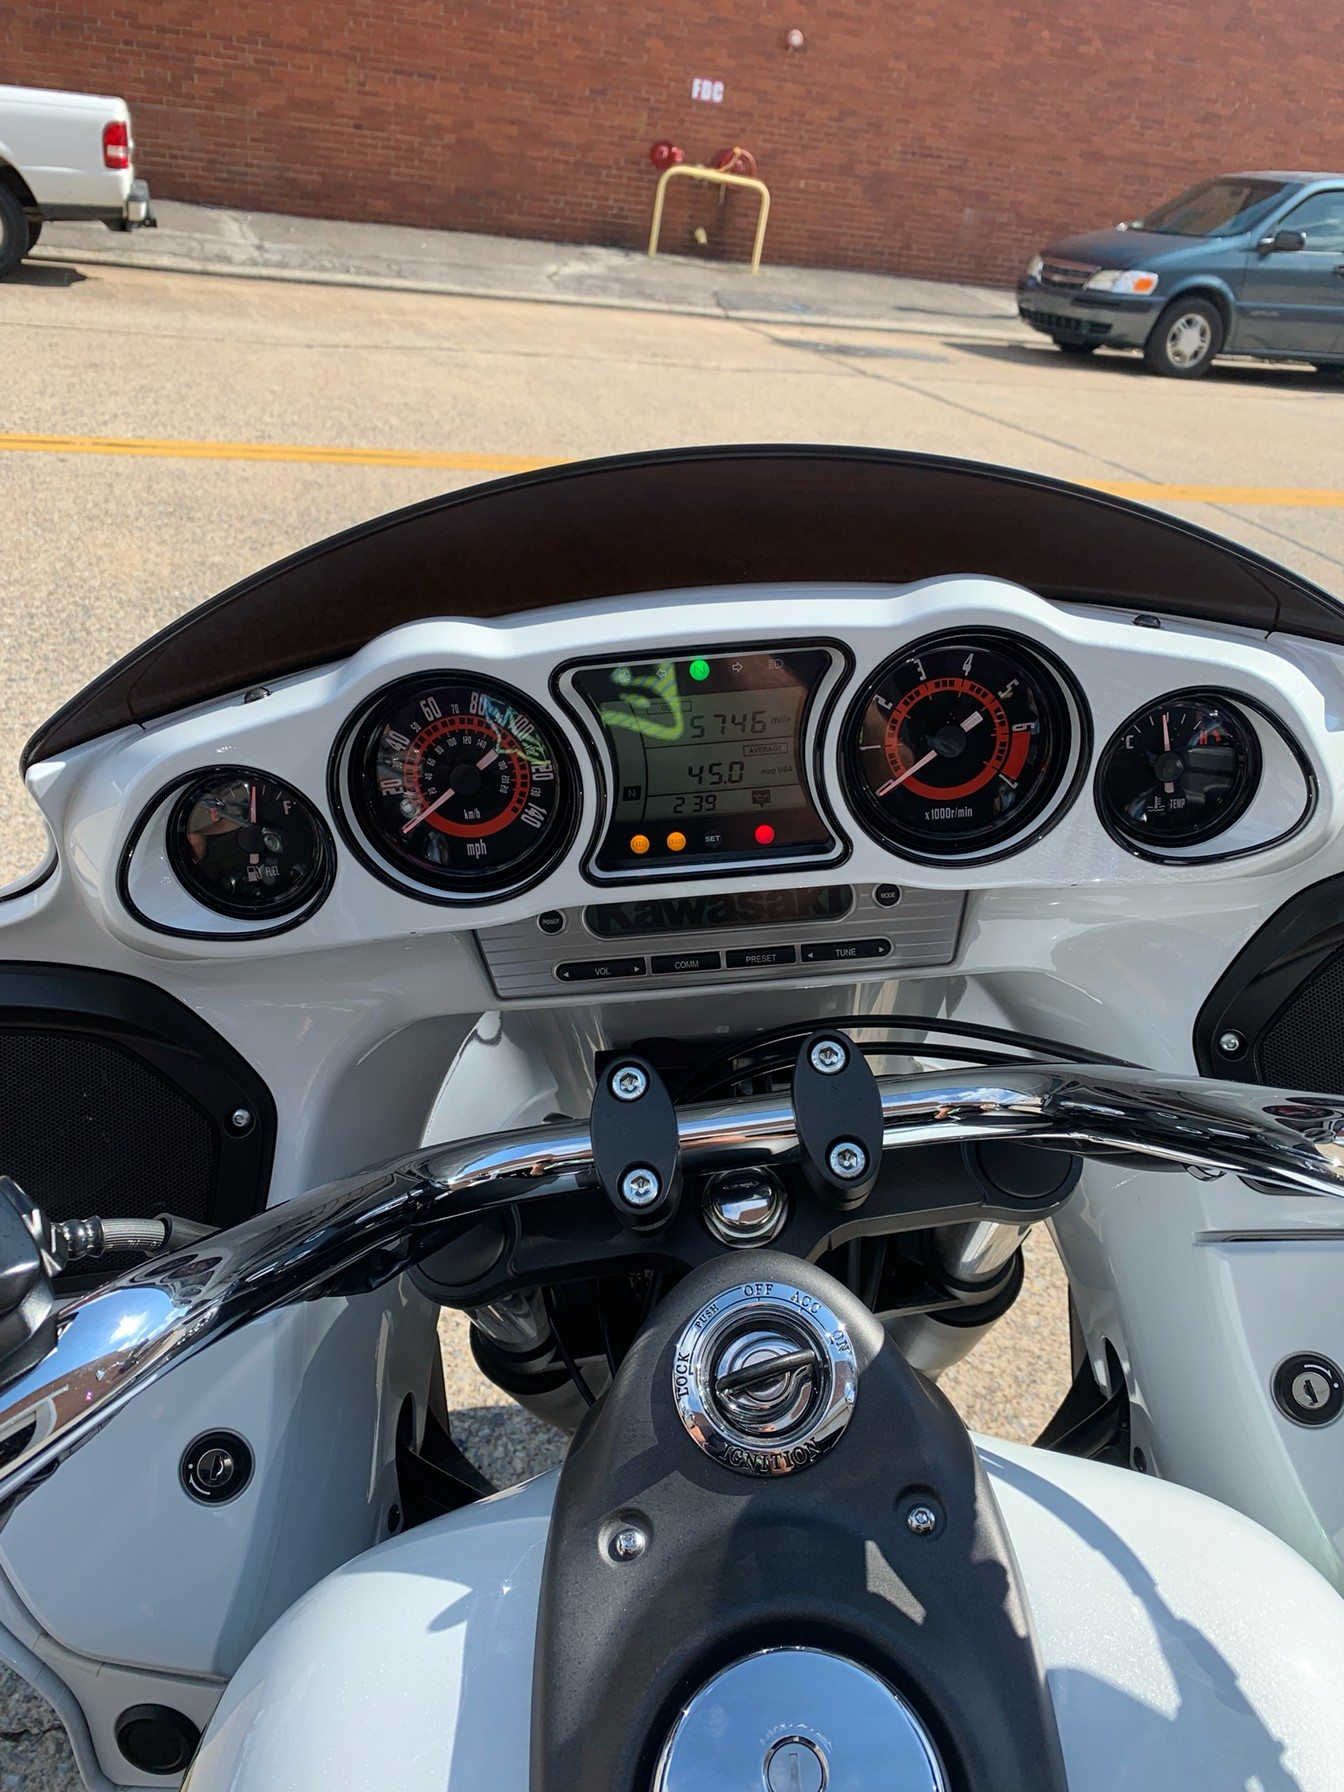 2016 Kawasaki Vulcan 1700 Vaquero ABS in Kingsport, Tennessee - Photo 6